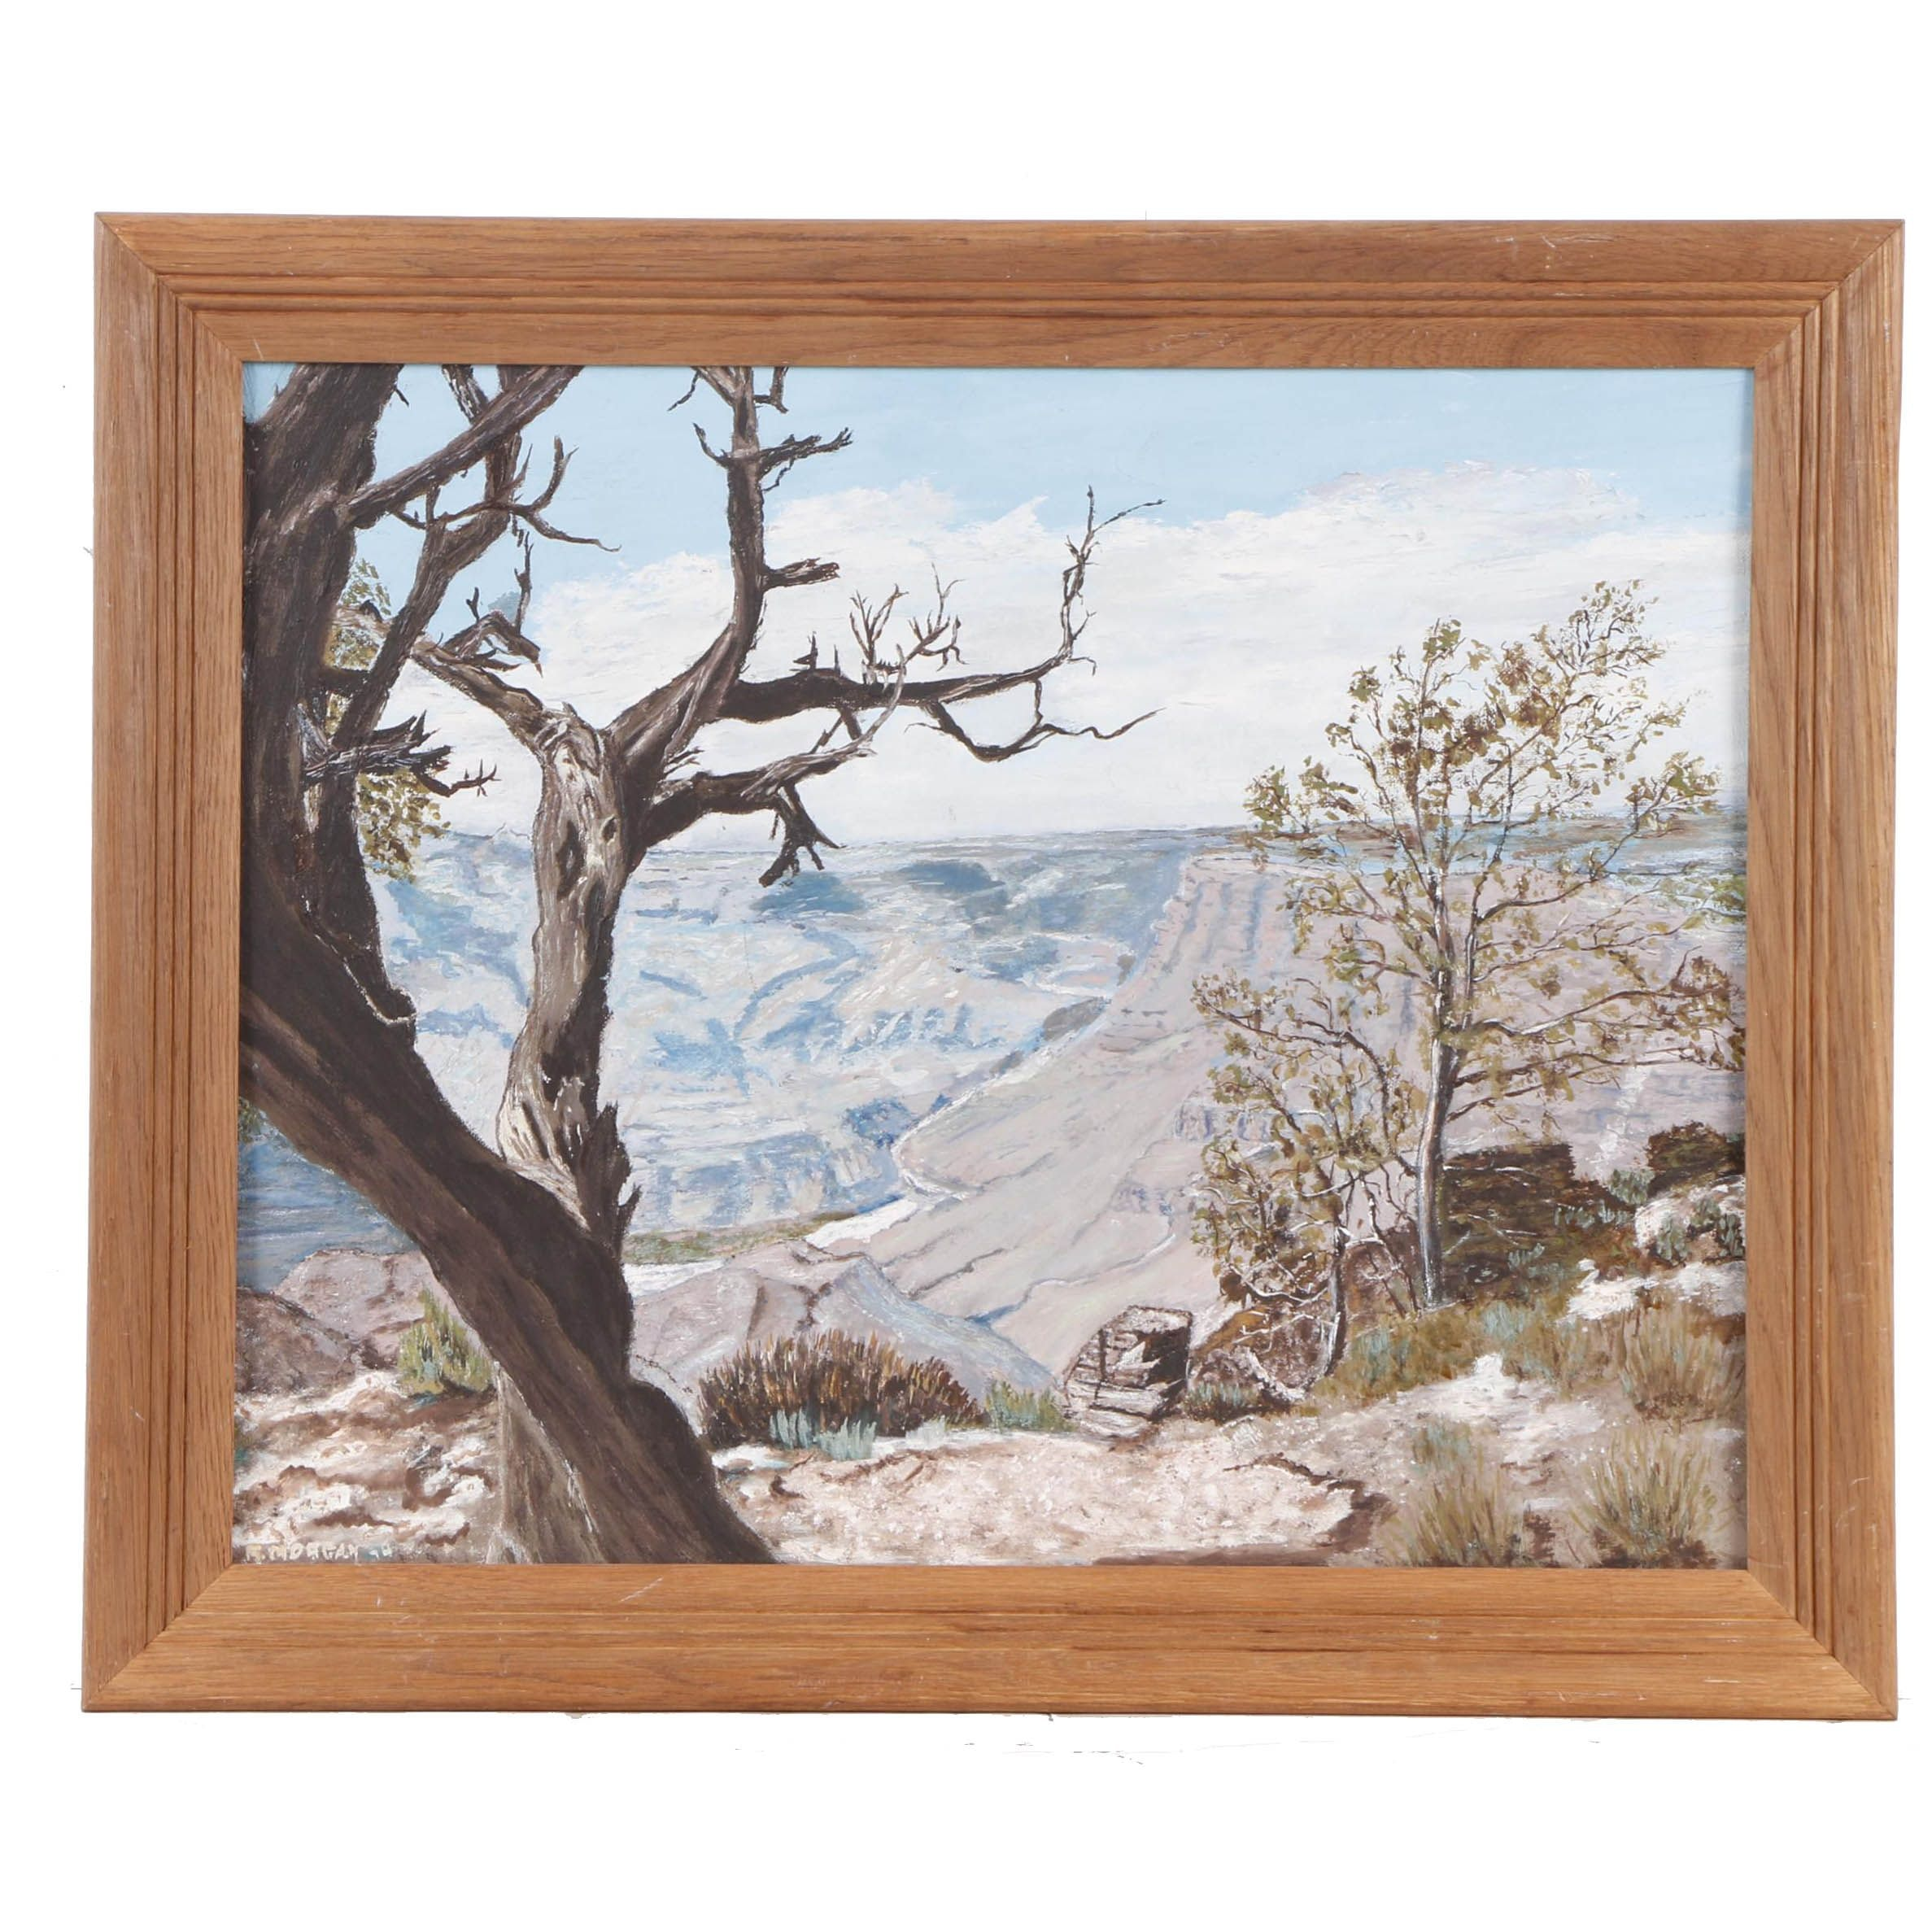 R. Morgan Oil Painting of the Grand Canyon